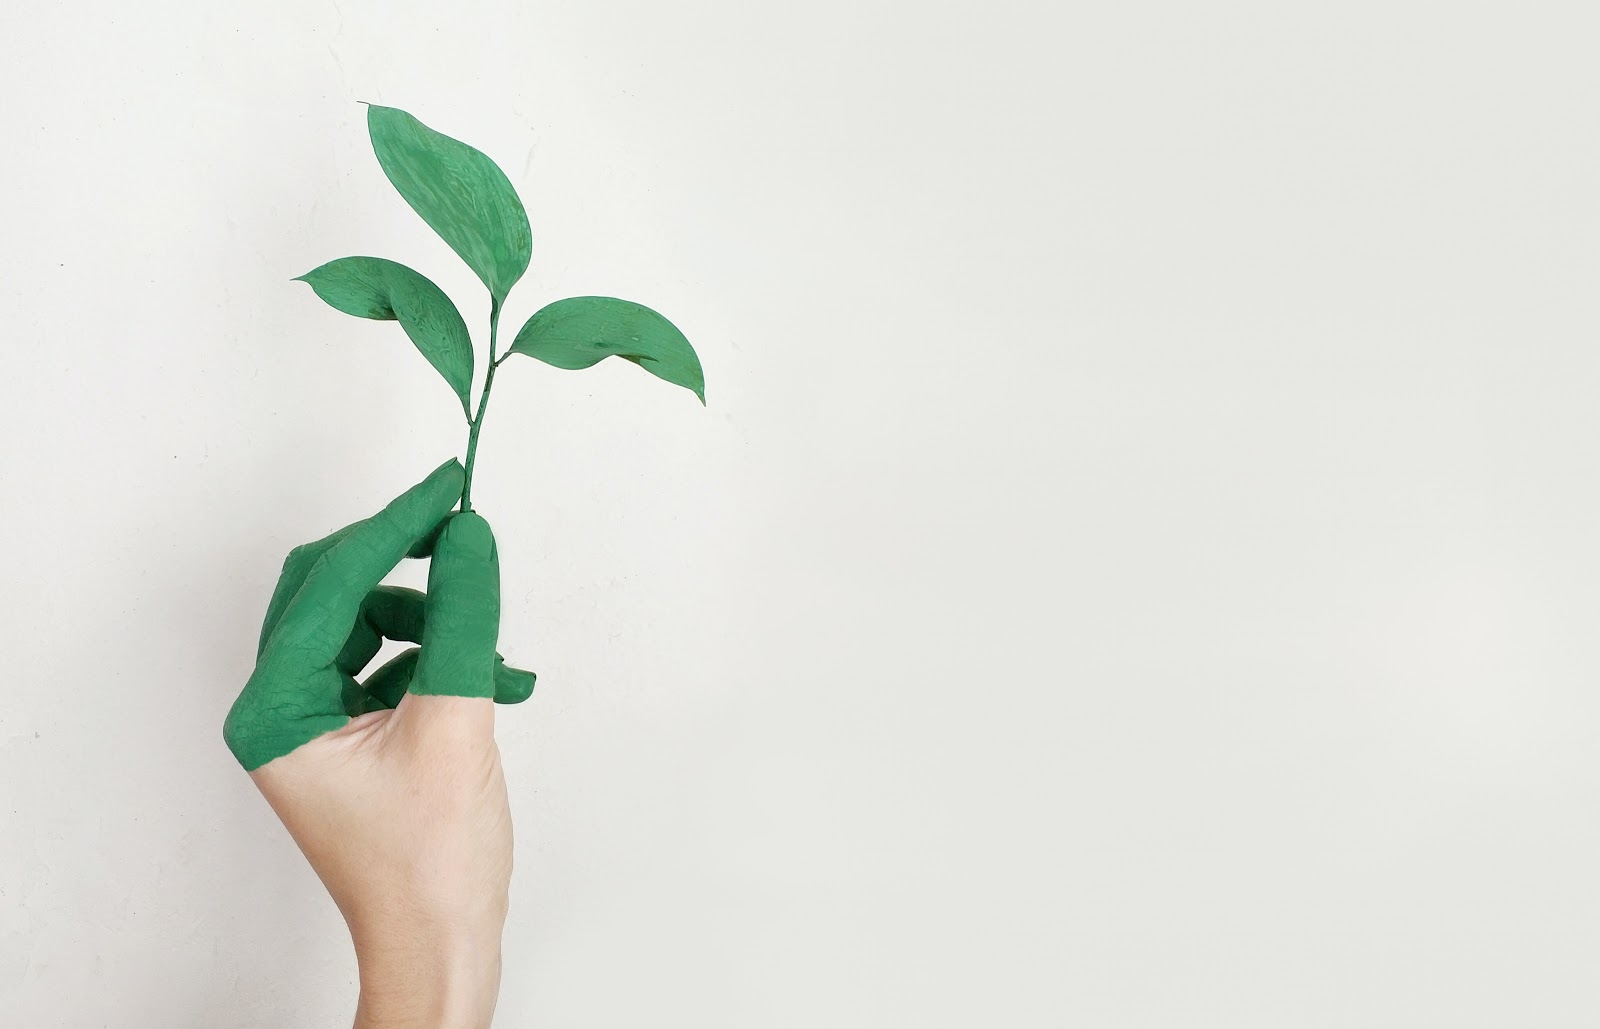 A picture of a half green hand holding a green plant.